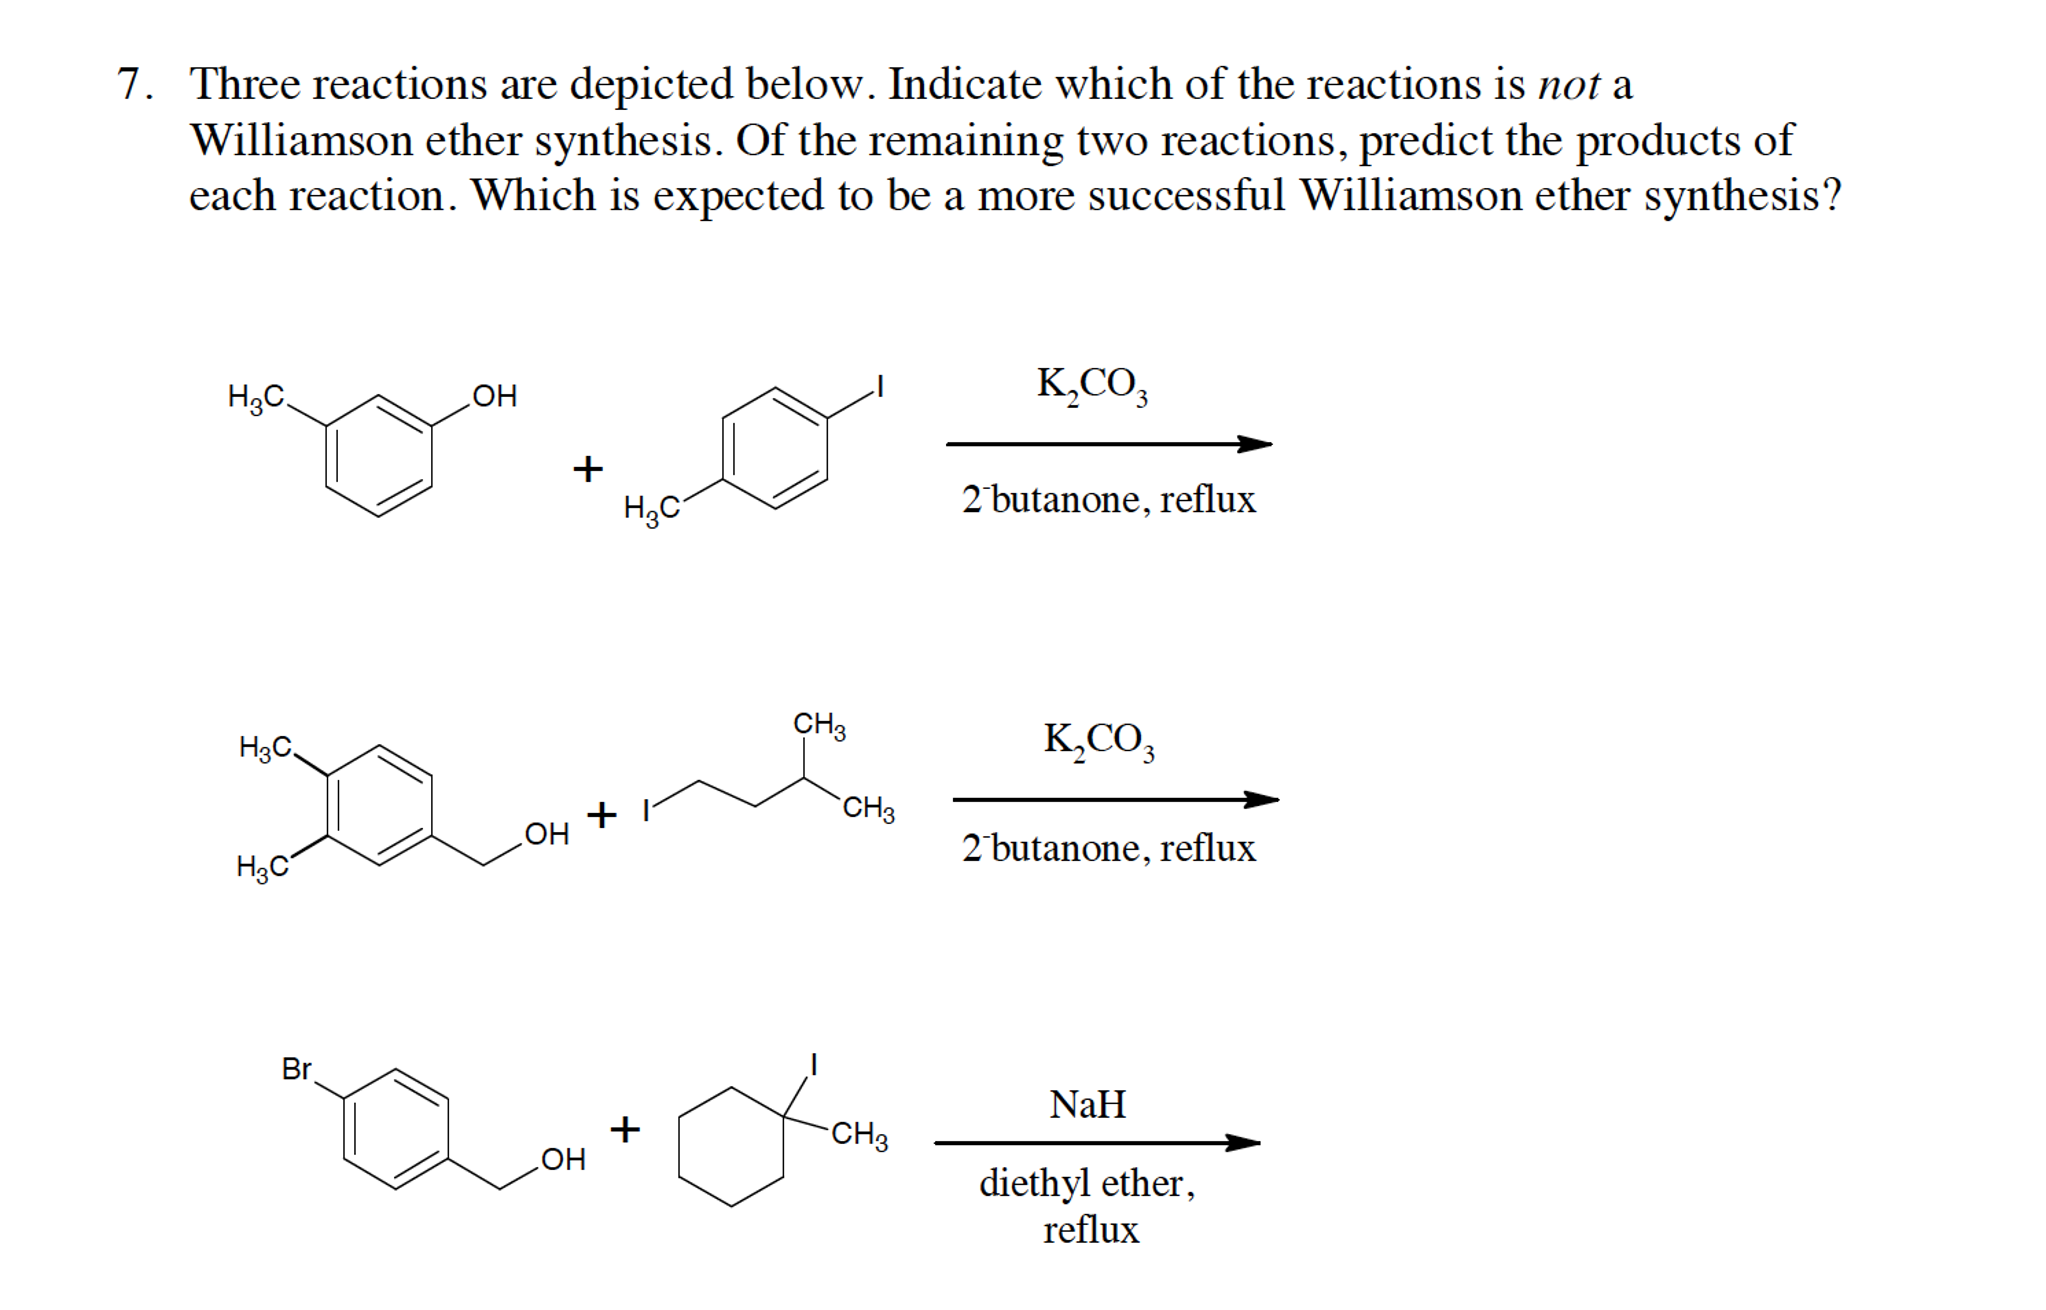 williamson ether synthesis A williamson ether synthesis consists of two separate reactions: the preparation of an alkoxide, and the reaction of this reagent with the alkyl halide sodium methoxide is prepared by the addition of sodium metal to methanol.